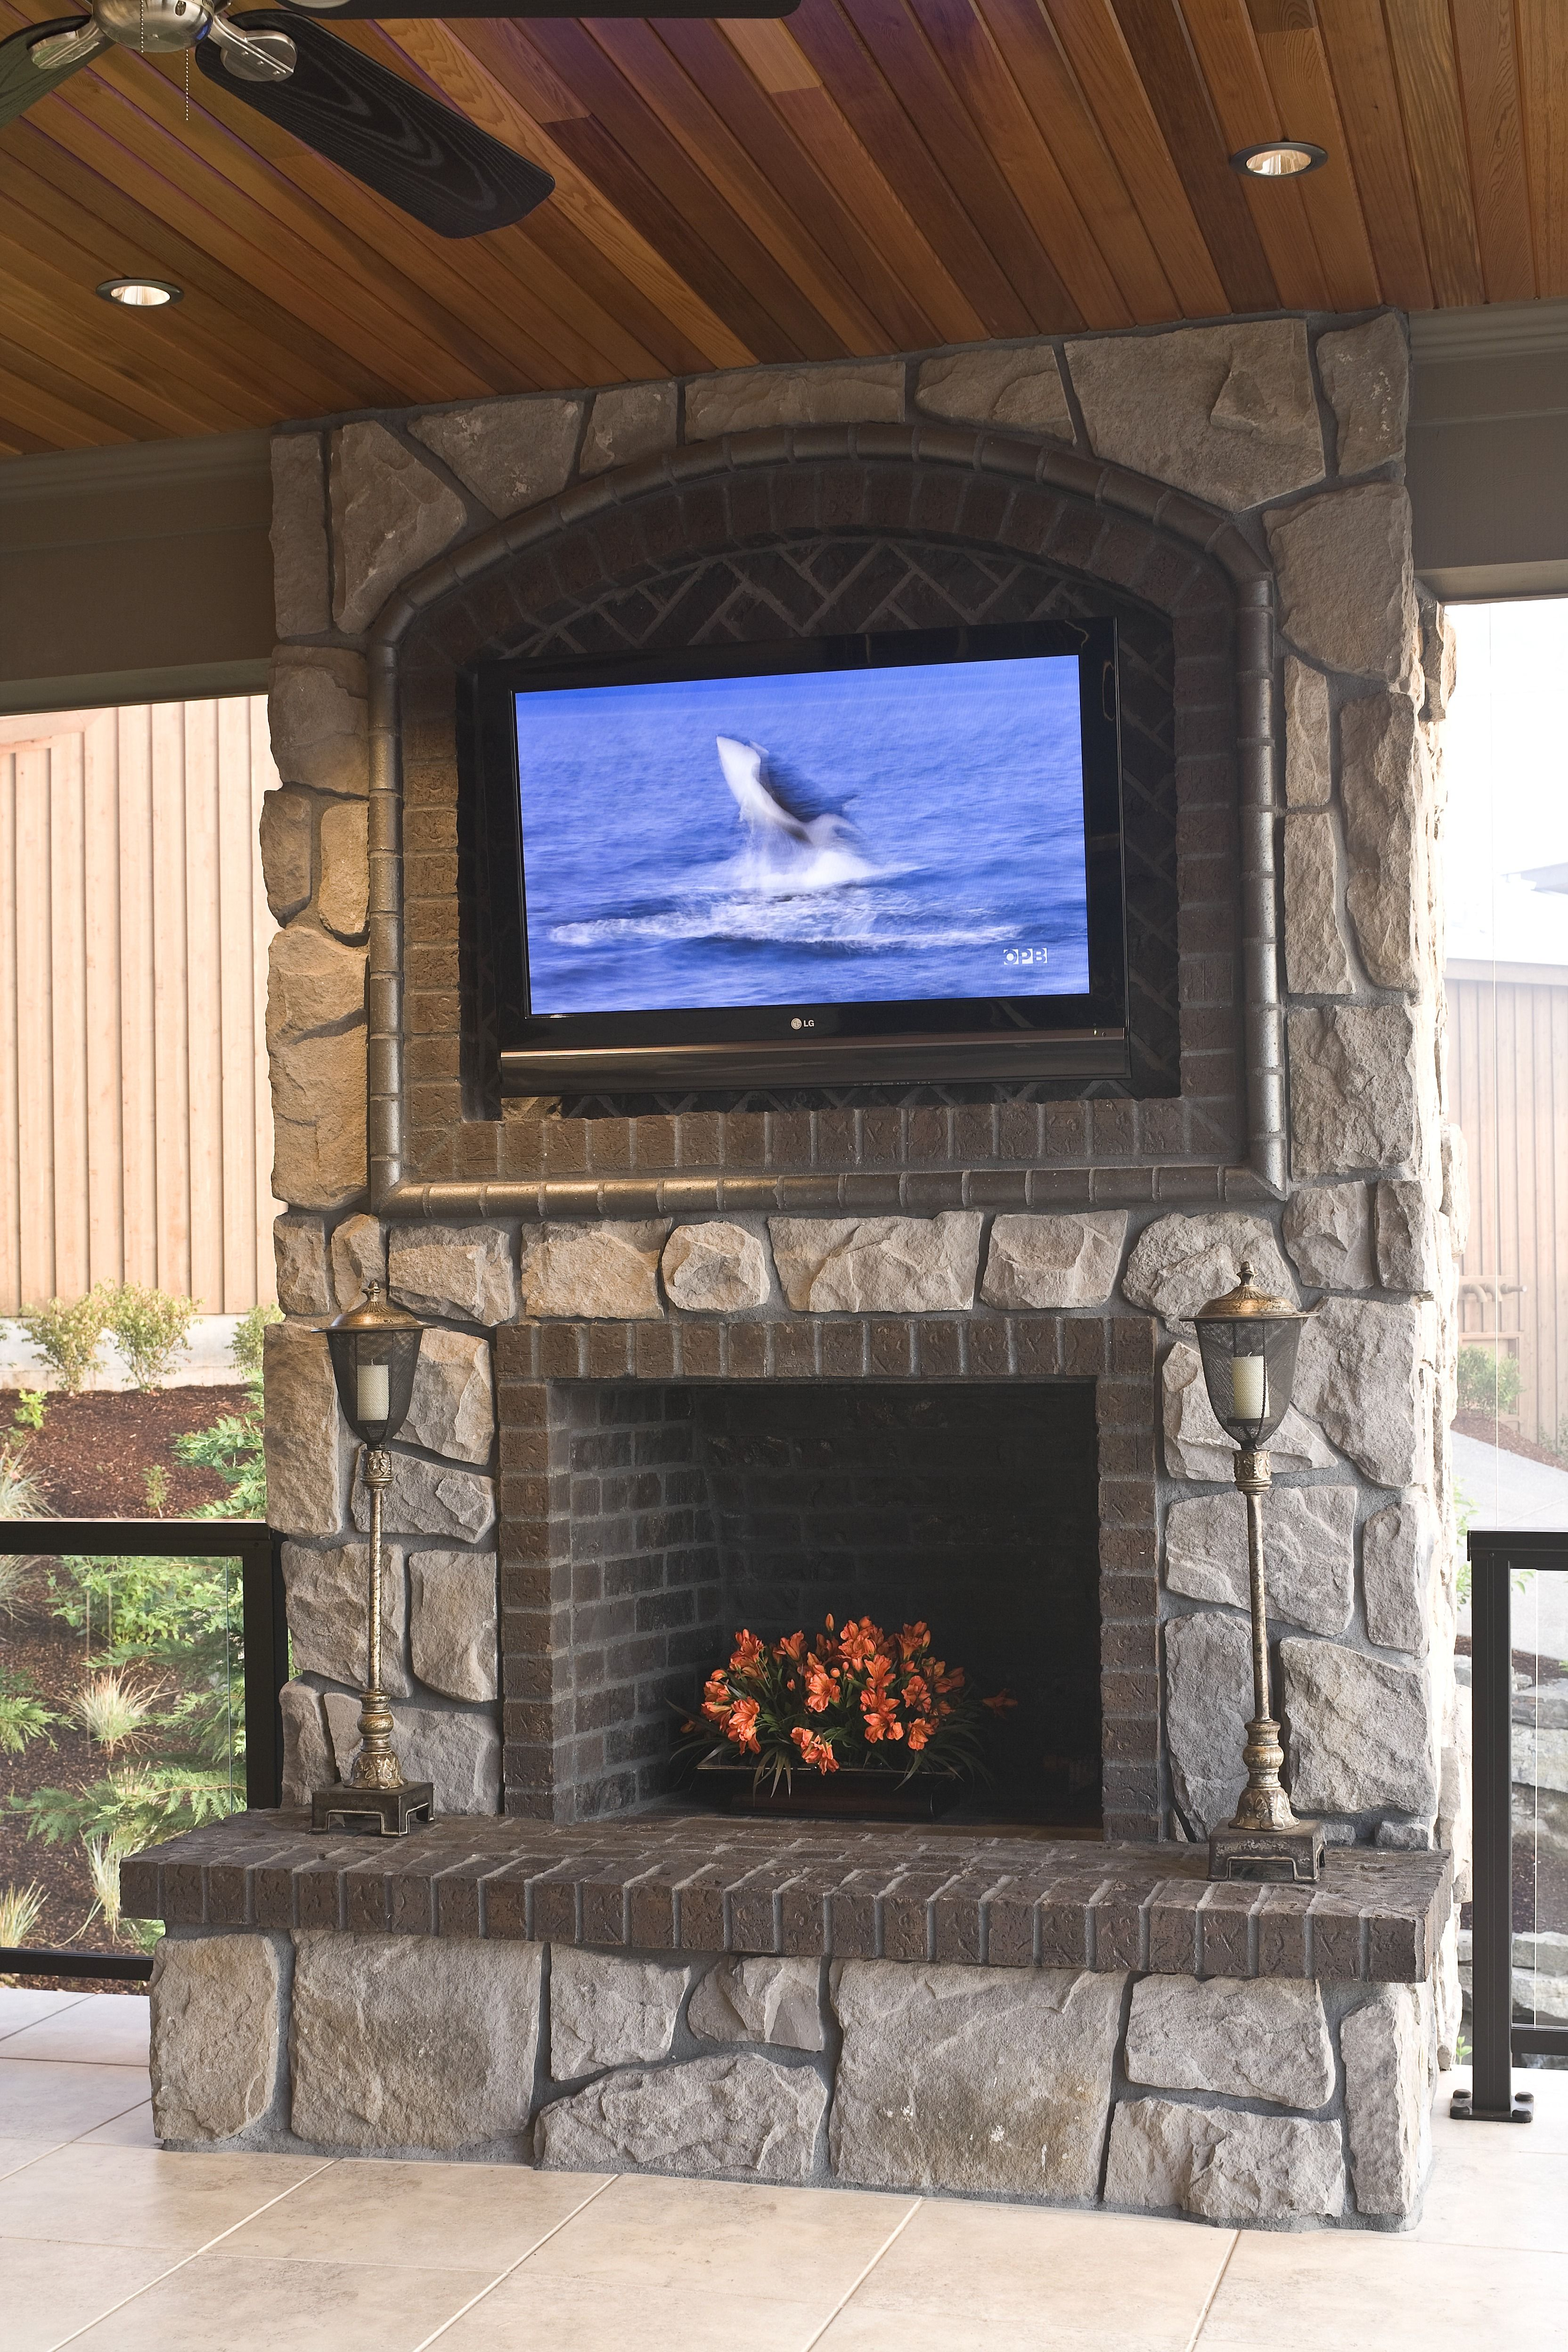 This Is The Perfect Patio For Watching A Movie Or Hanging Out With Friends The Large Rock Chimne Outdoor Gas Fireplace Build Outdoor Fireplace Patio Fireplace